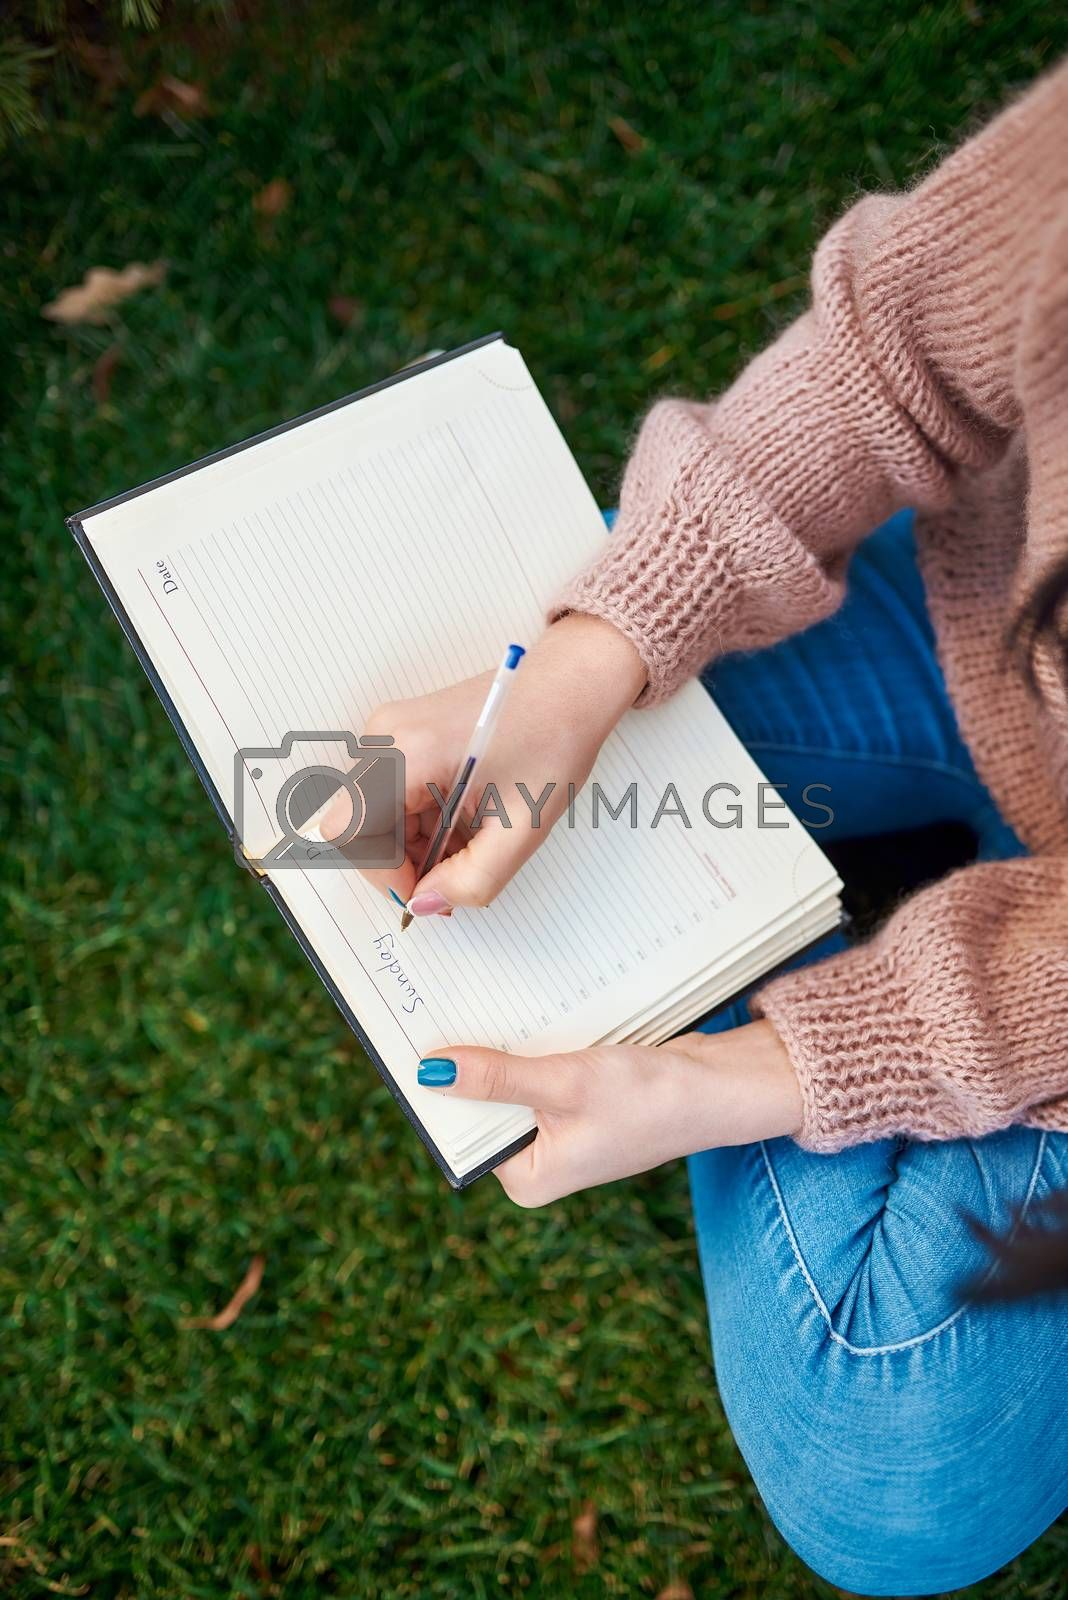 Top view of young lady in casual clothing writing something down to her daily planner while sitting cross-legged on green sward